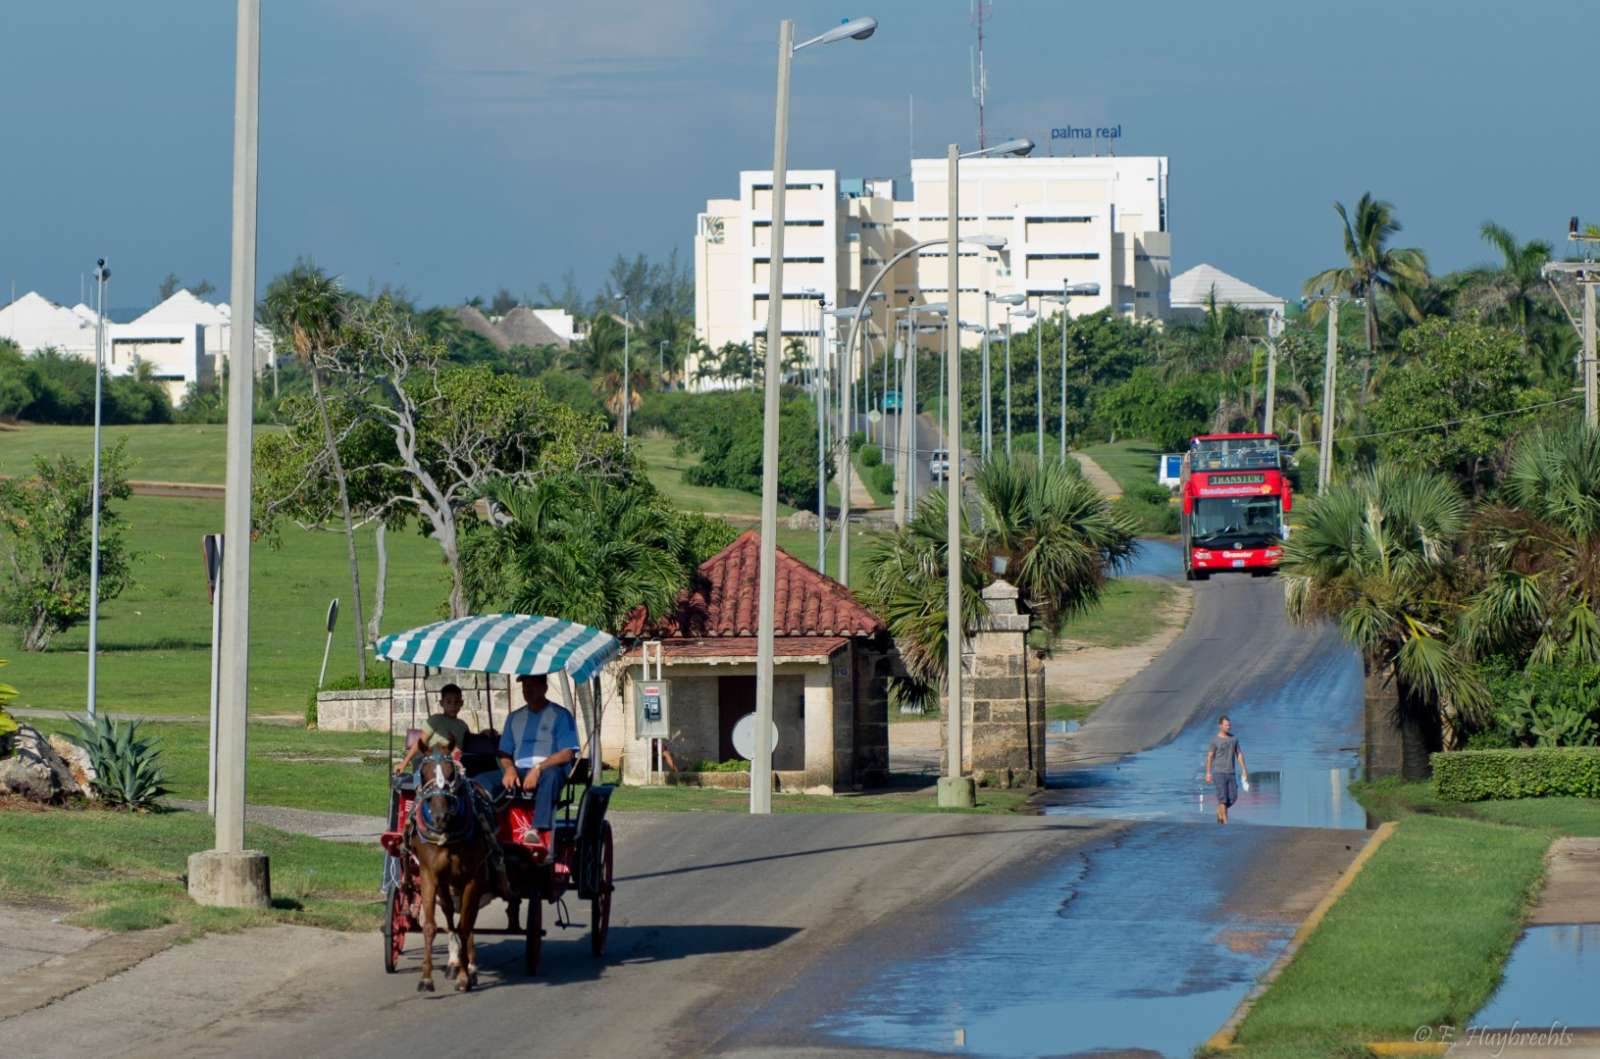 Horse carriage and tourist bus in Varadero, Cuba